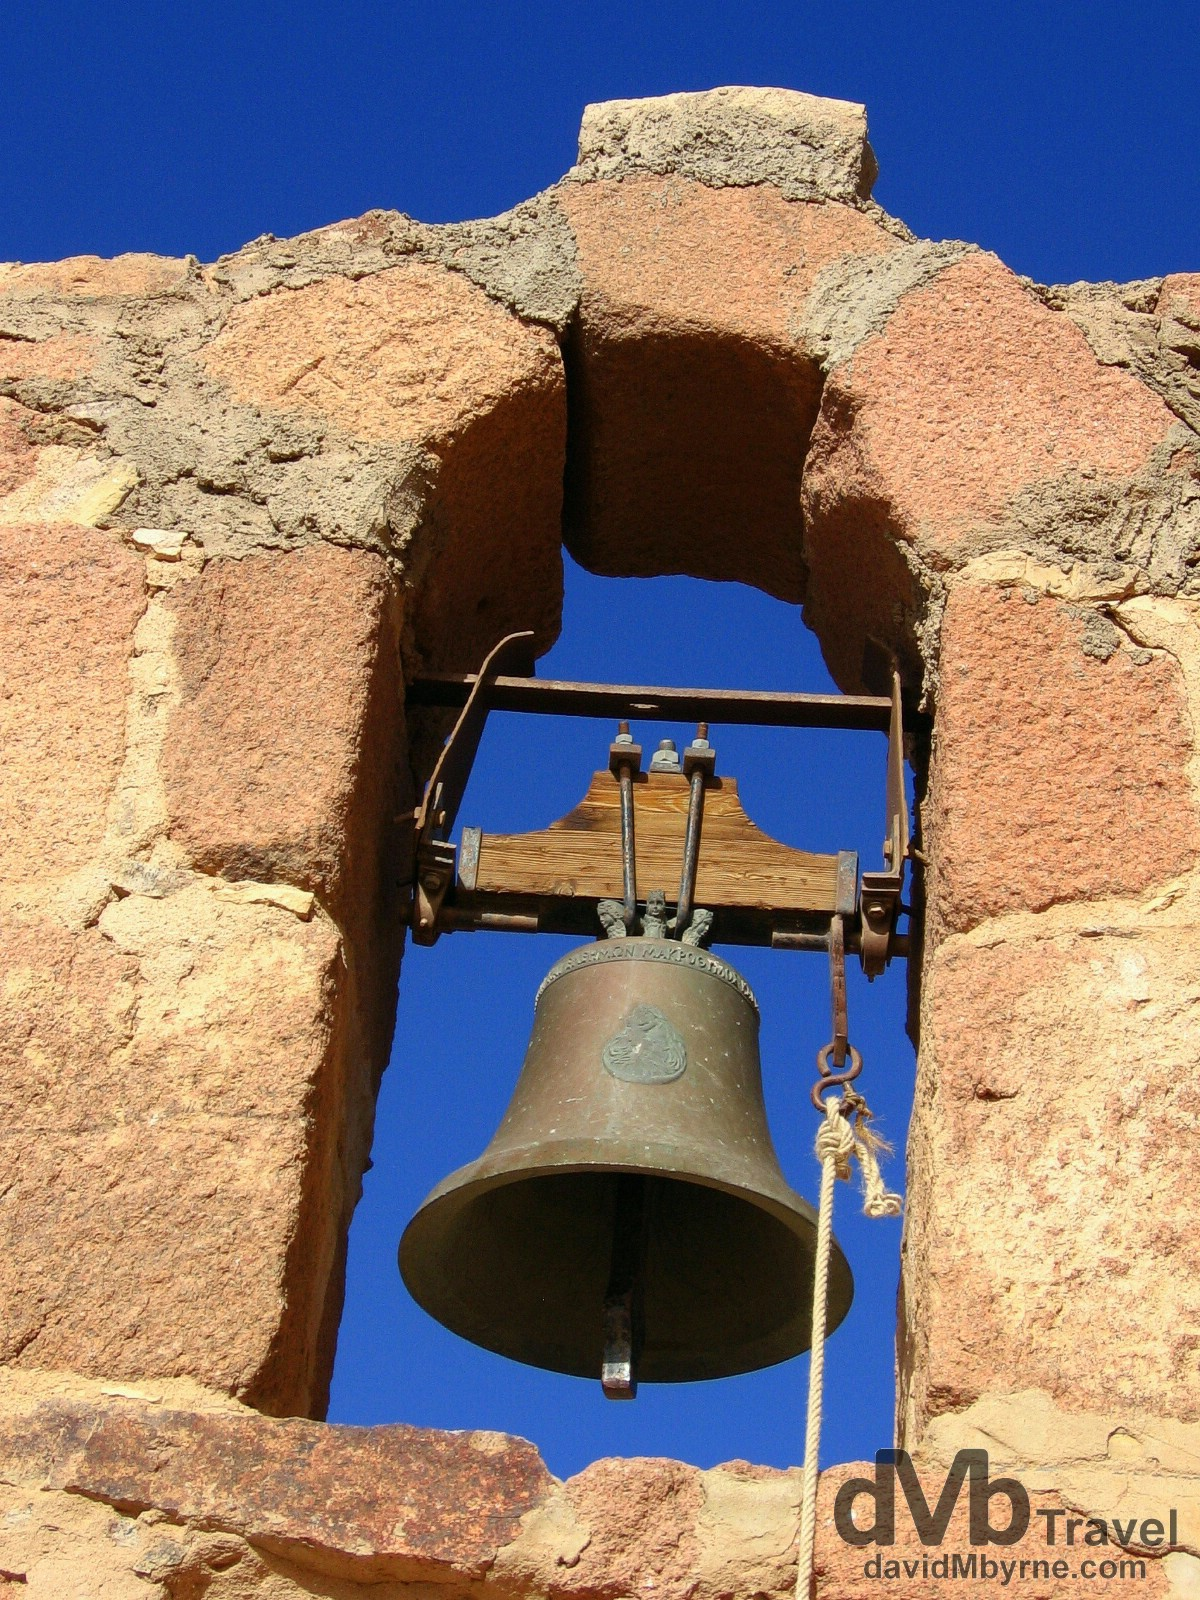 The bell of the church found on the summit of Mt. Sinai, Sinai Peninsula, Egypt. April 22, 2008.